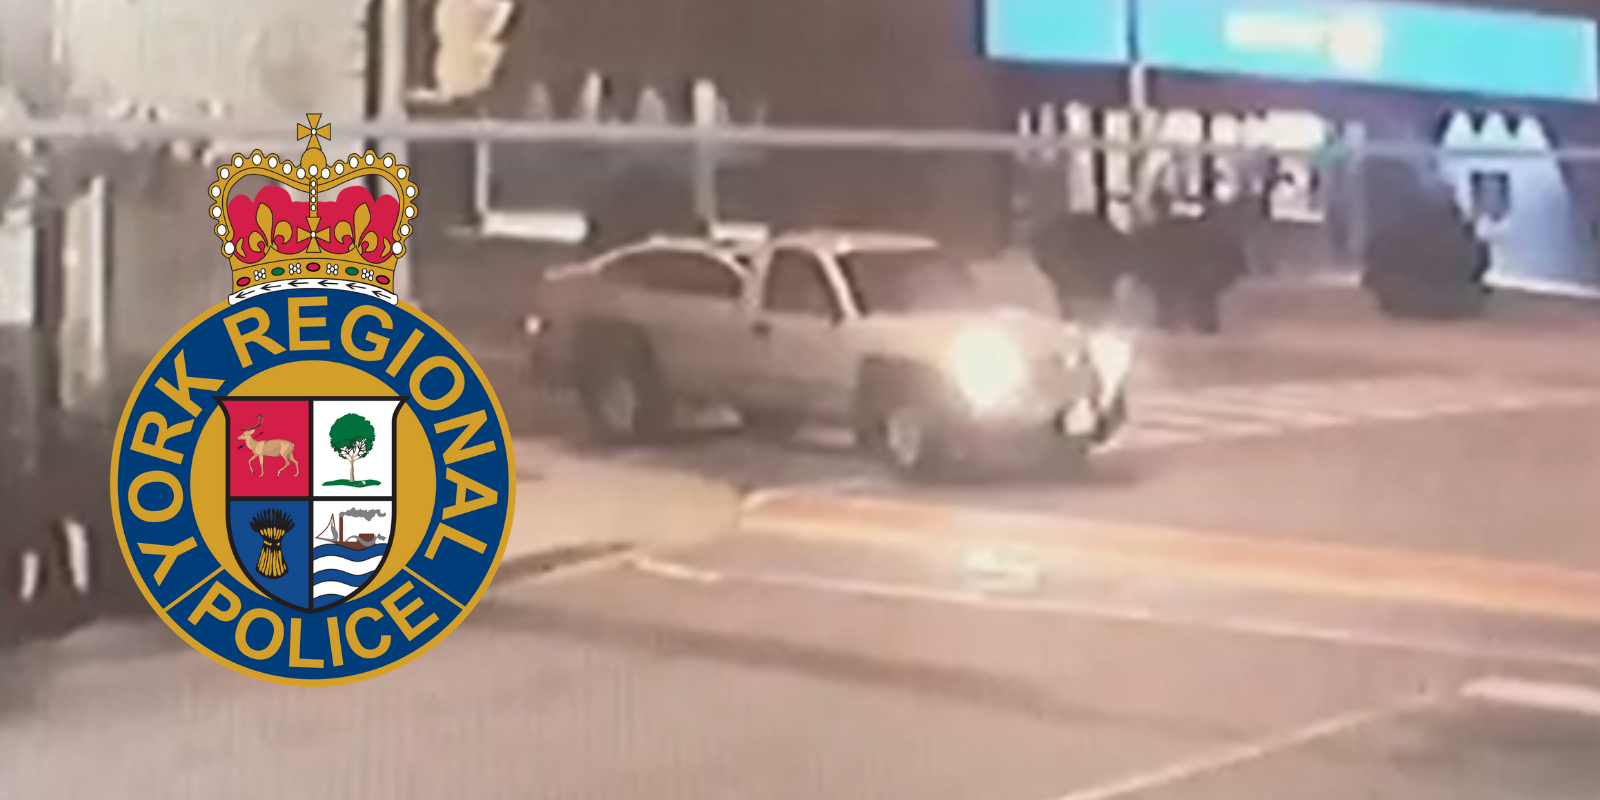 Police asking for public's help identifying truck that defaced LGBT Pride crosswalk with skid marks